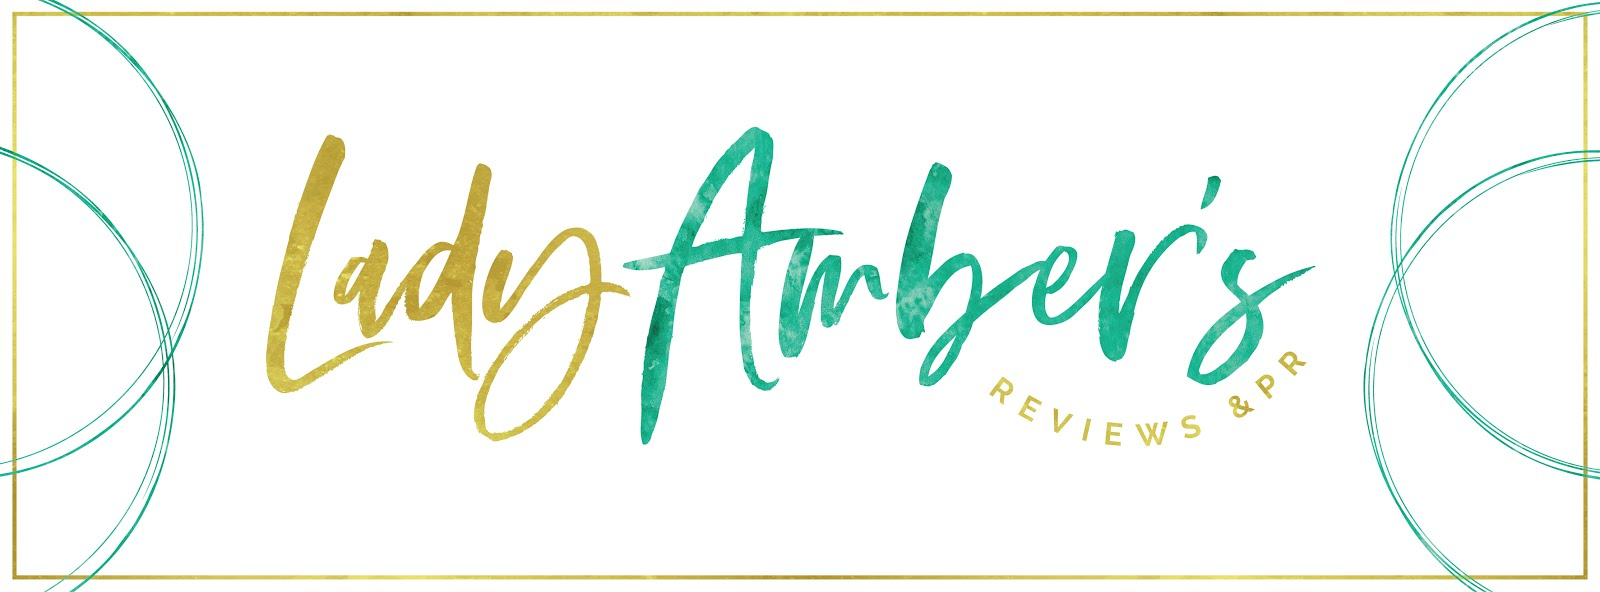 Lady Amber's Reviews